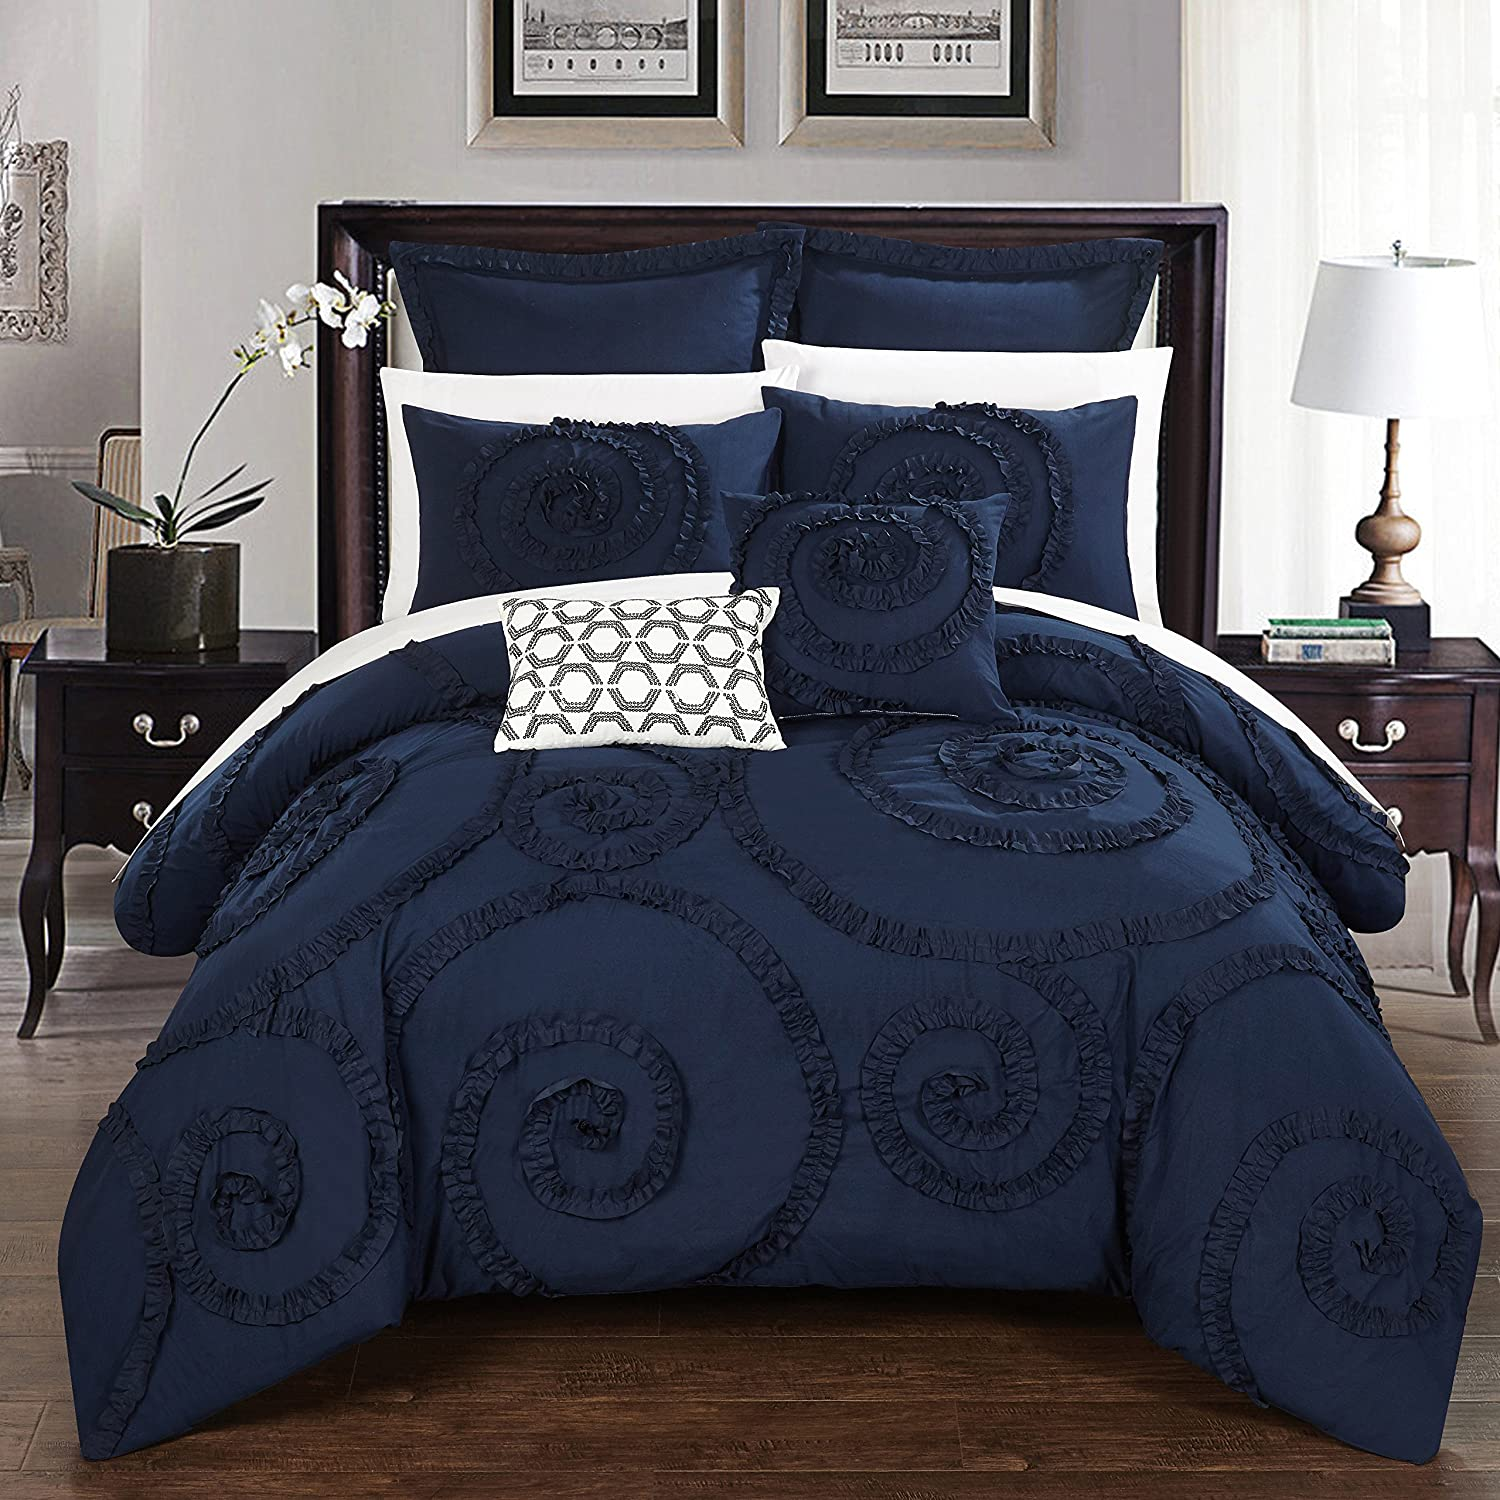 Chic Home 7 Piece Rosalia Floral Ruffled Etched Embroidery Queen Comforter Set Navy